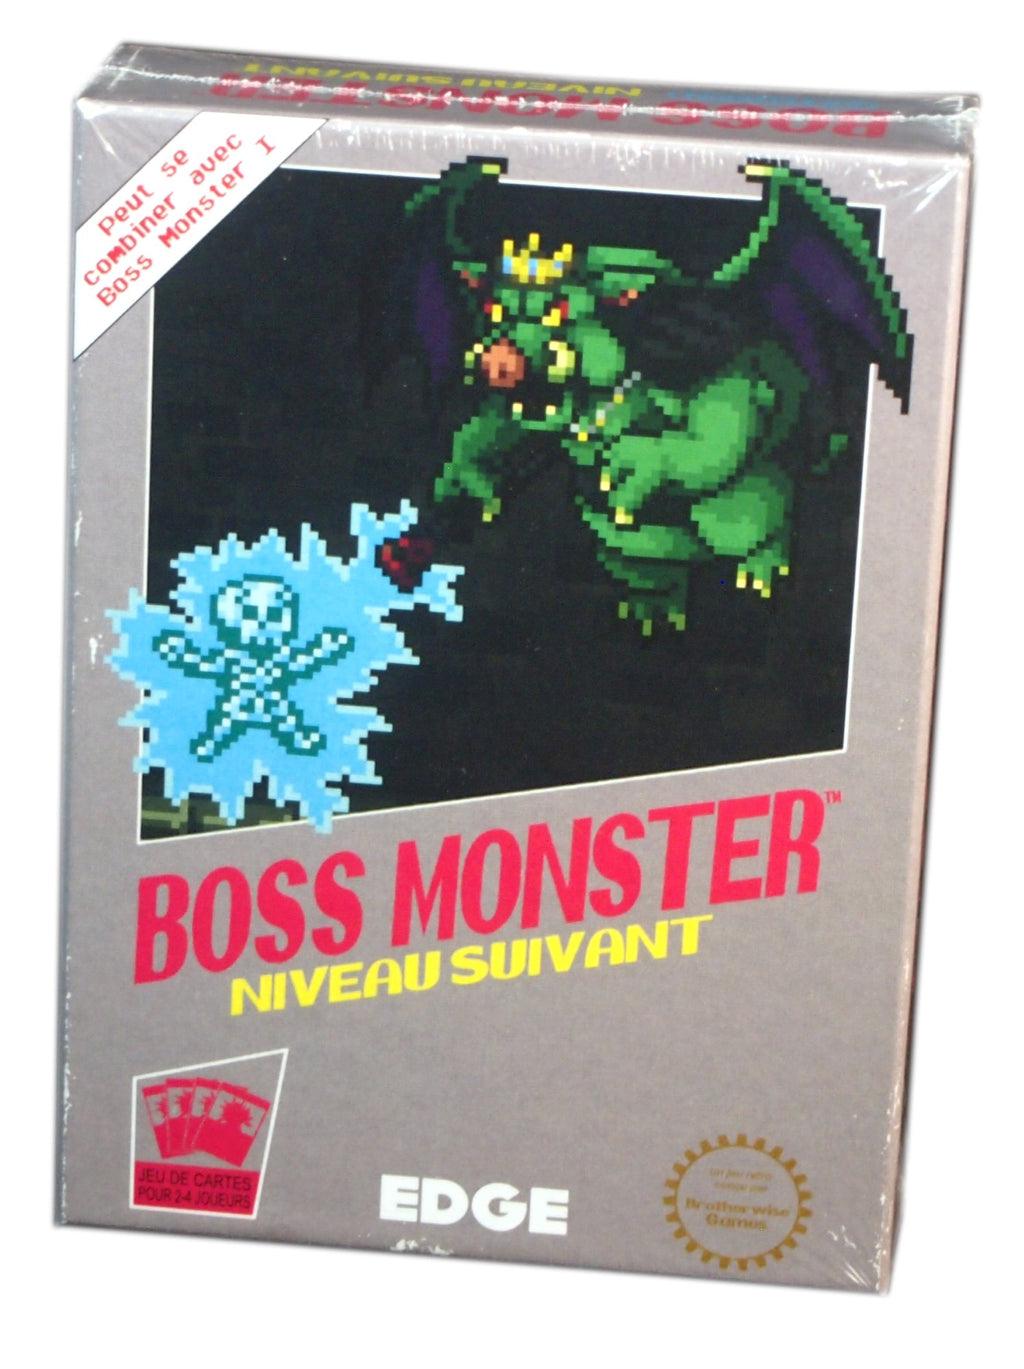 Boss Monster Niveau Suivant (French Edition)